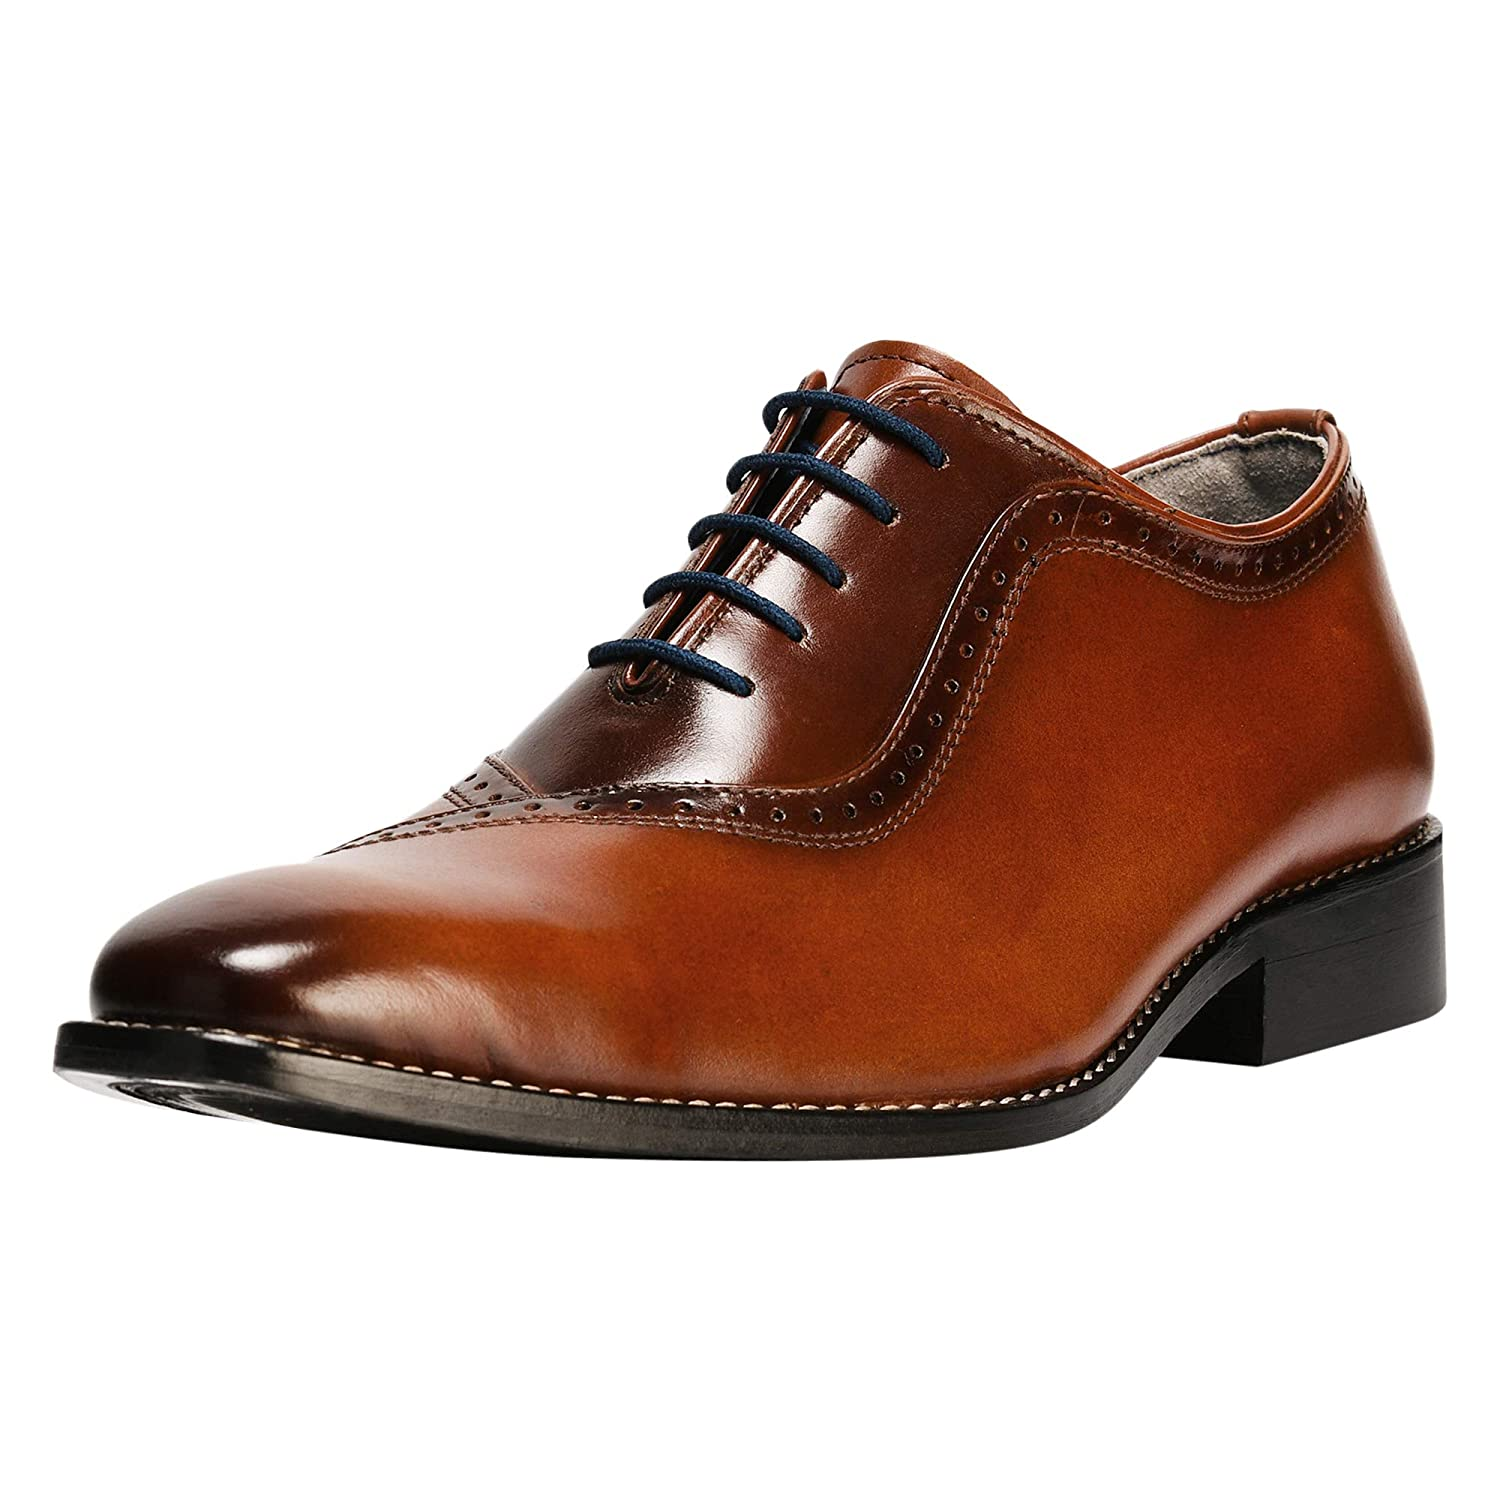 a41cd1ce6 Amazon.com | Liberty Men's Genuine Handmade Finest Leather with Burnished  Toe - Lace up Oxford Dress Shoes | Oxfords